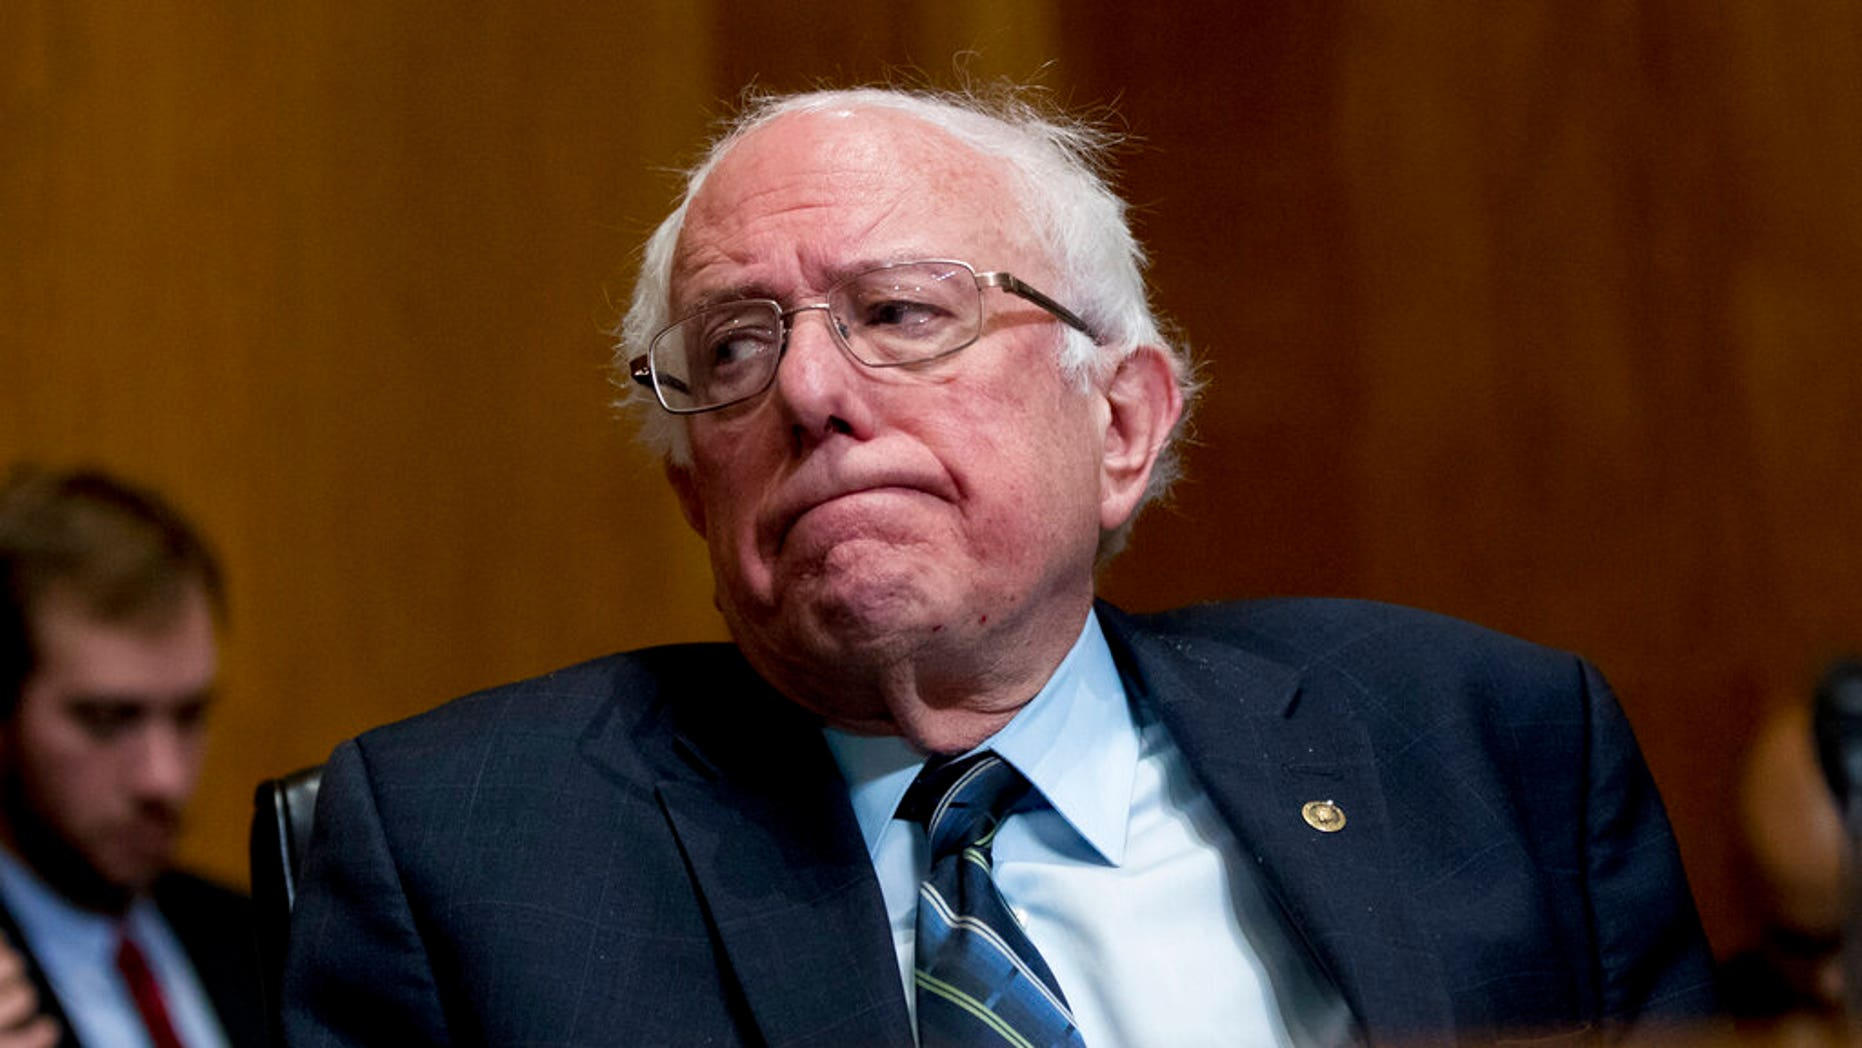 Sen. Bernie Sanders said he doesn't need advice from Hillary Clinton when it comes to running a campaign. (AP Photo/Andrew Harnik)